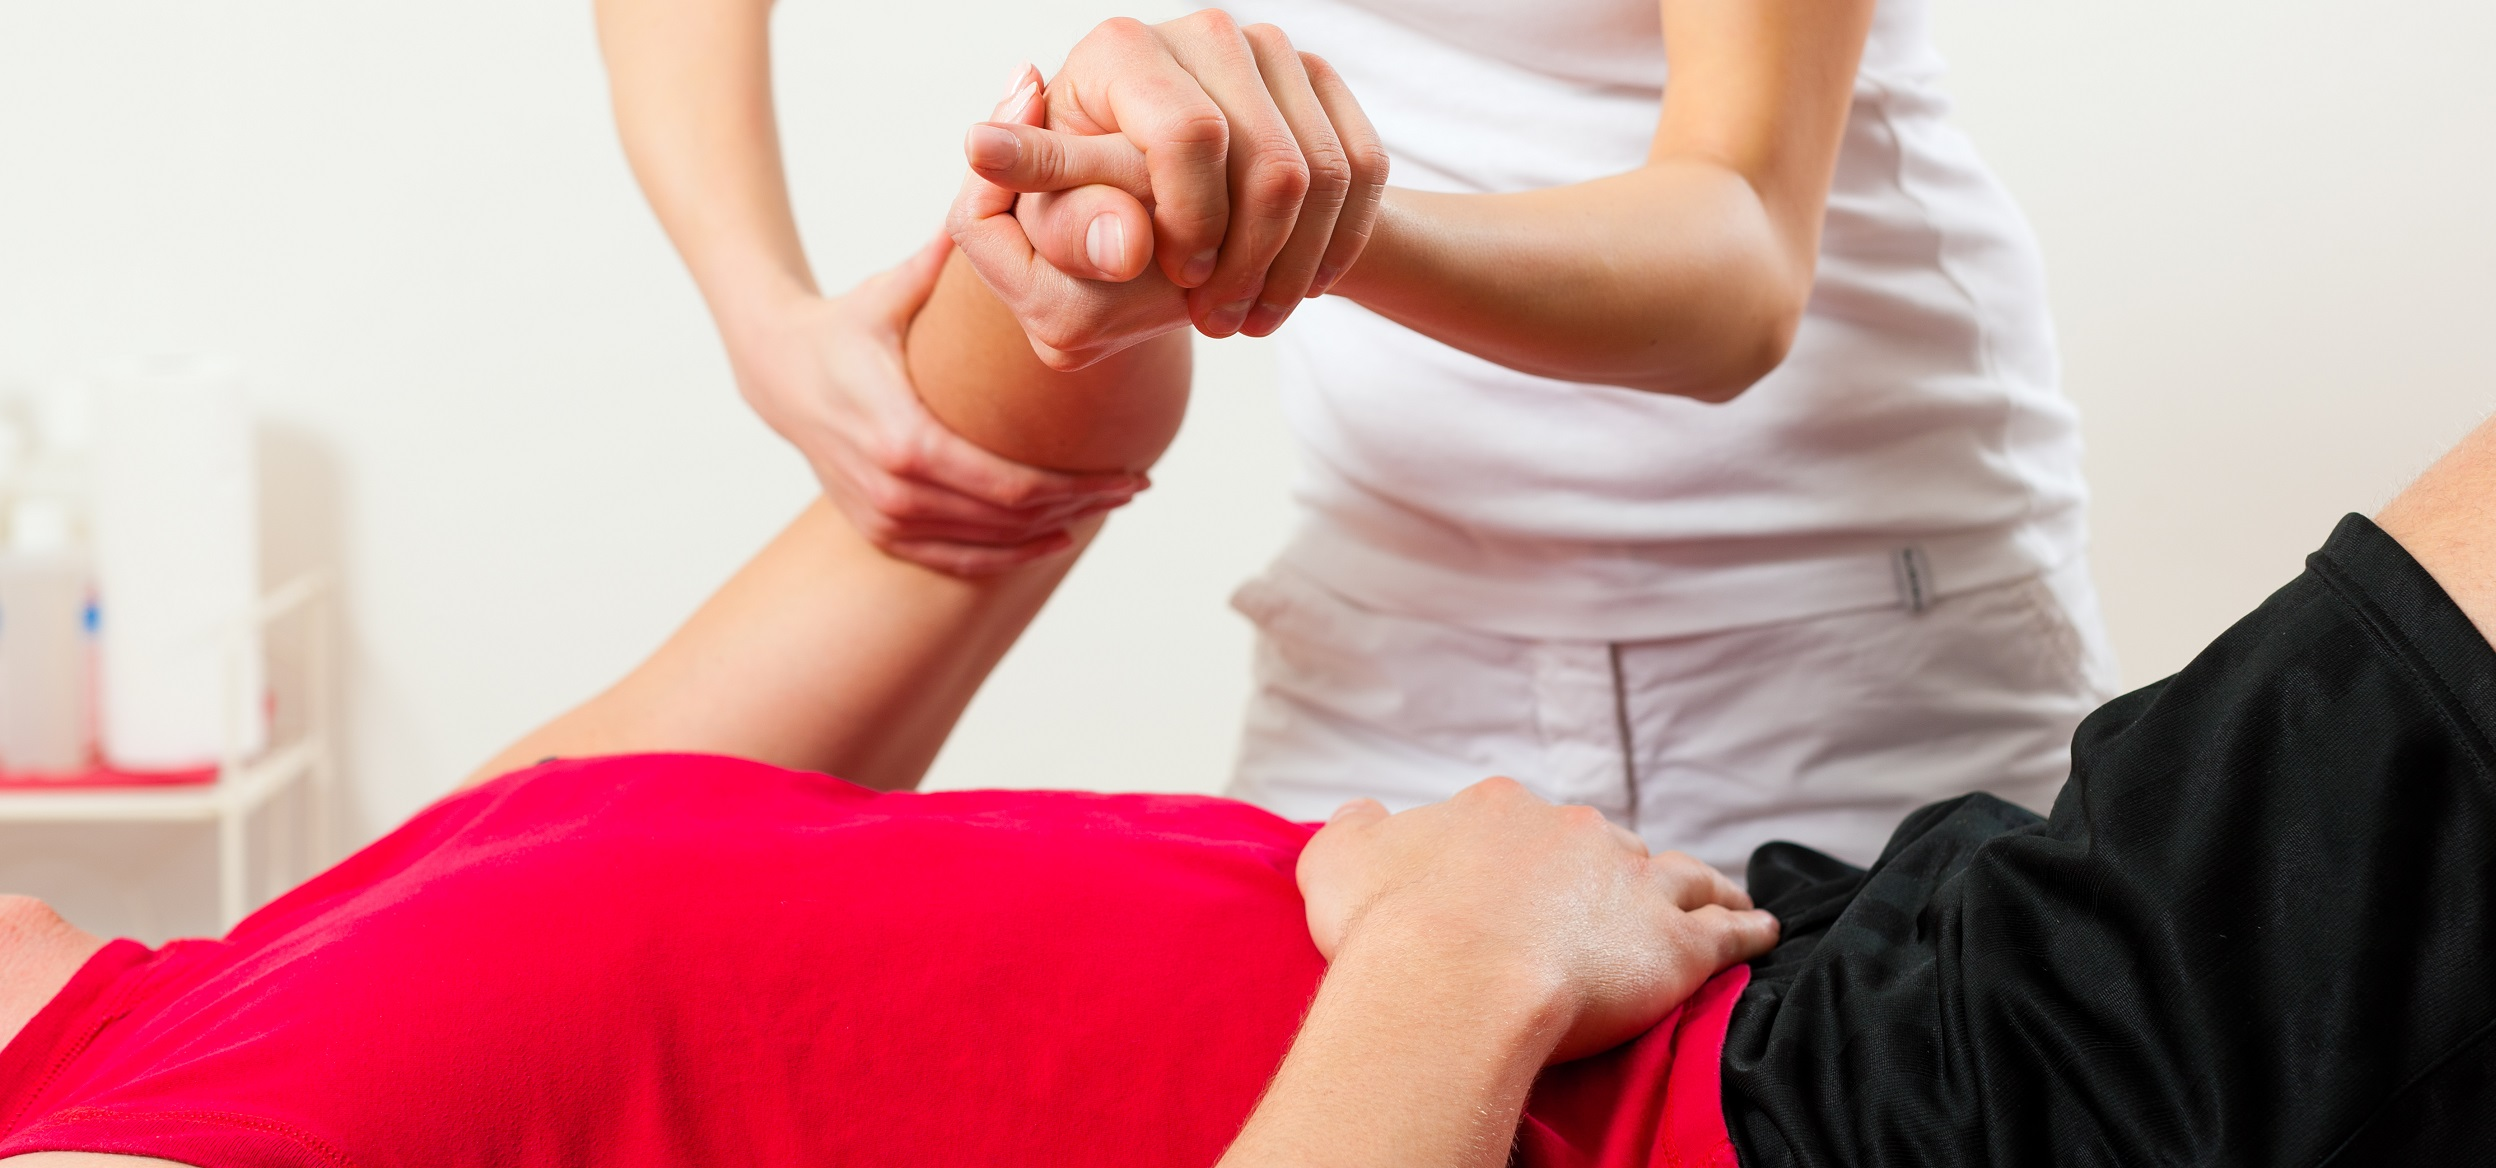 10 Reasons Physical Therapy is Beneficial